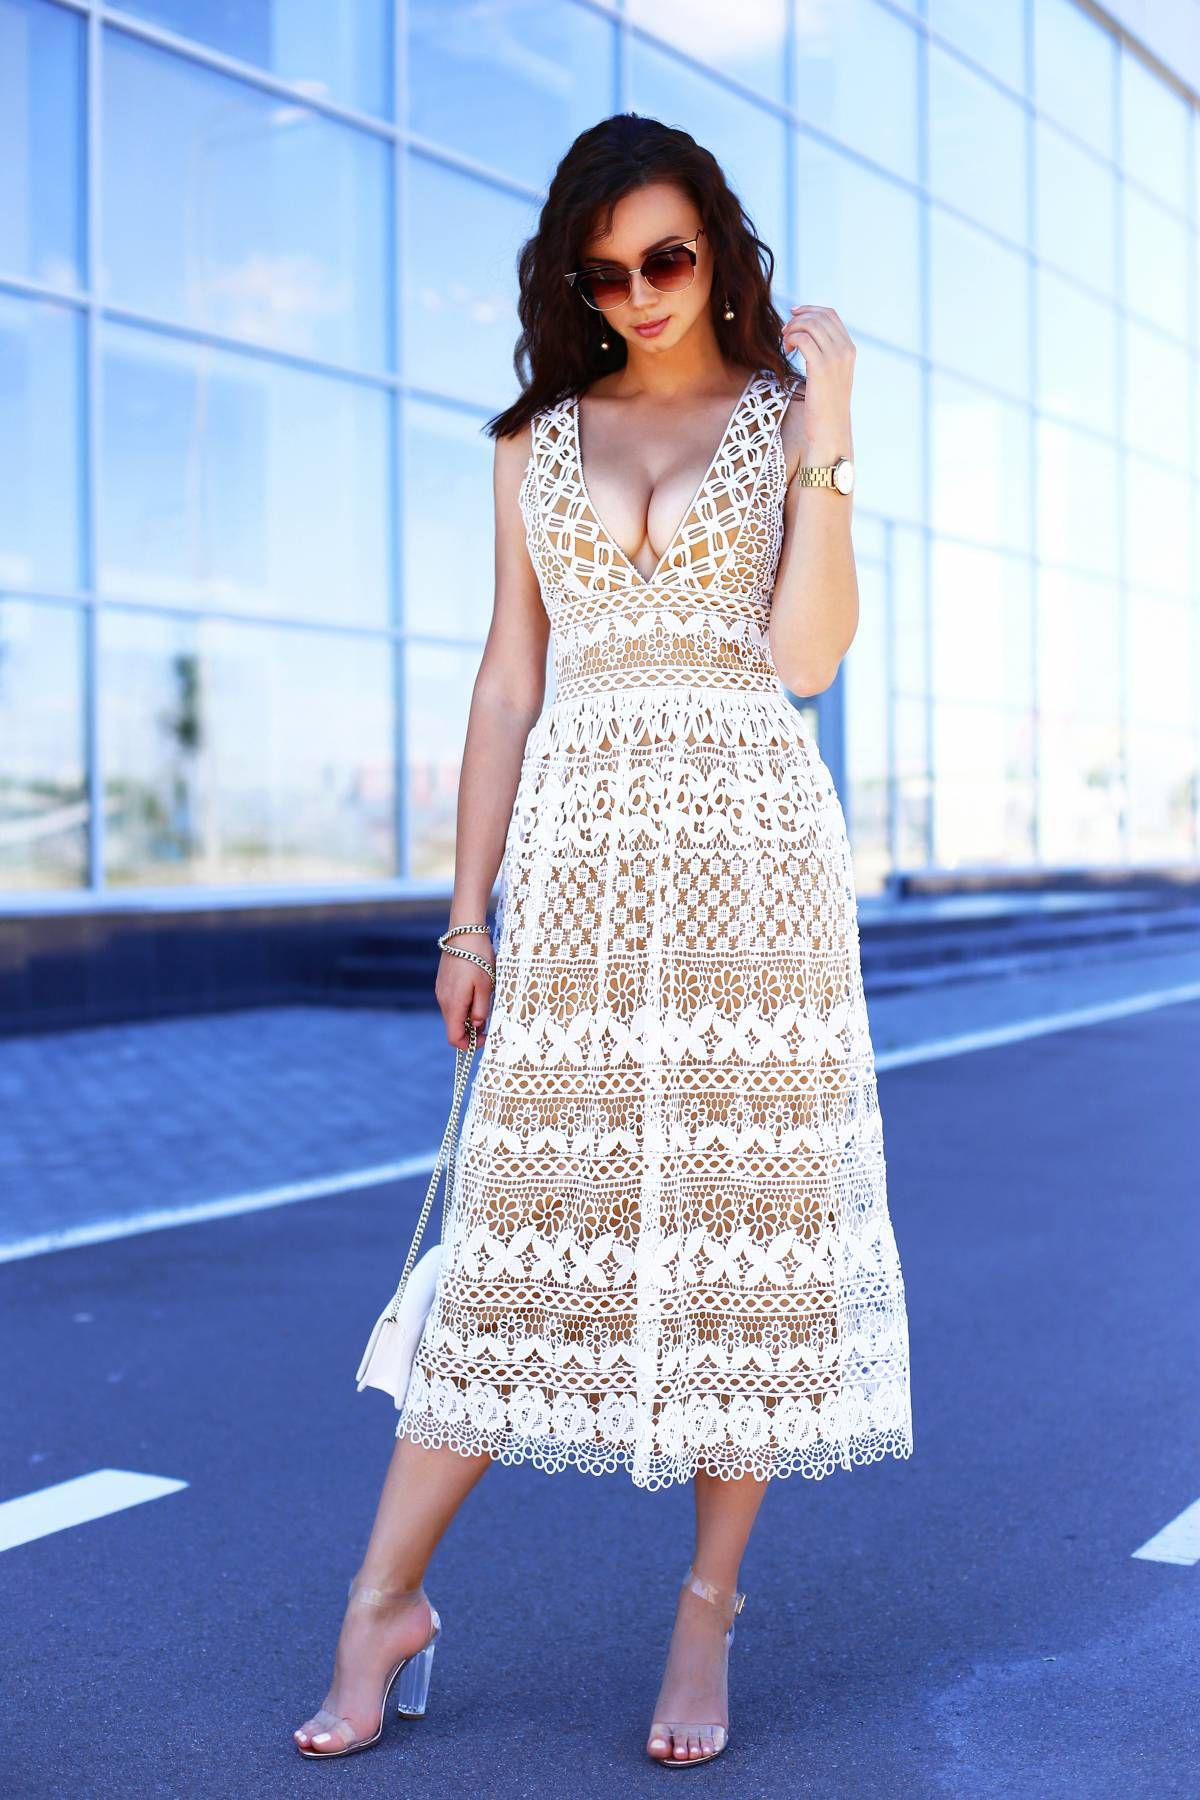 c90ad3dd168b Corded lace dress outfit wearing Boohoo V-neck crochet lace midi dress,  Boohoo strappy